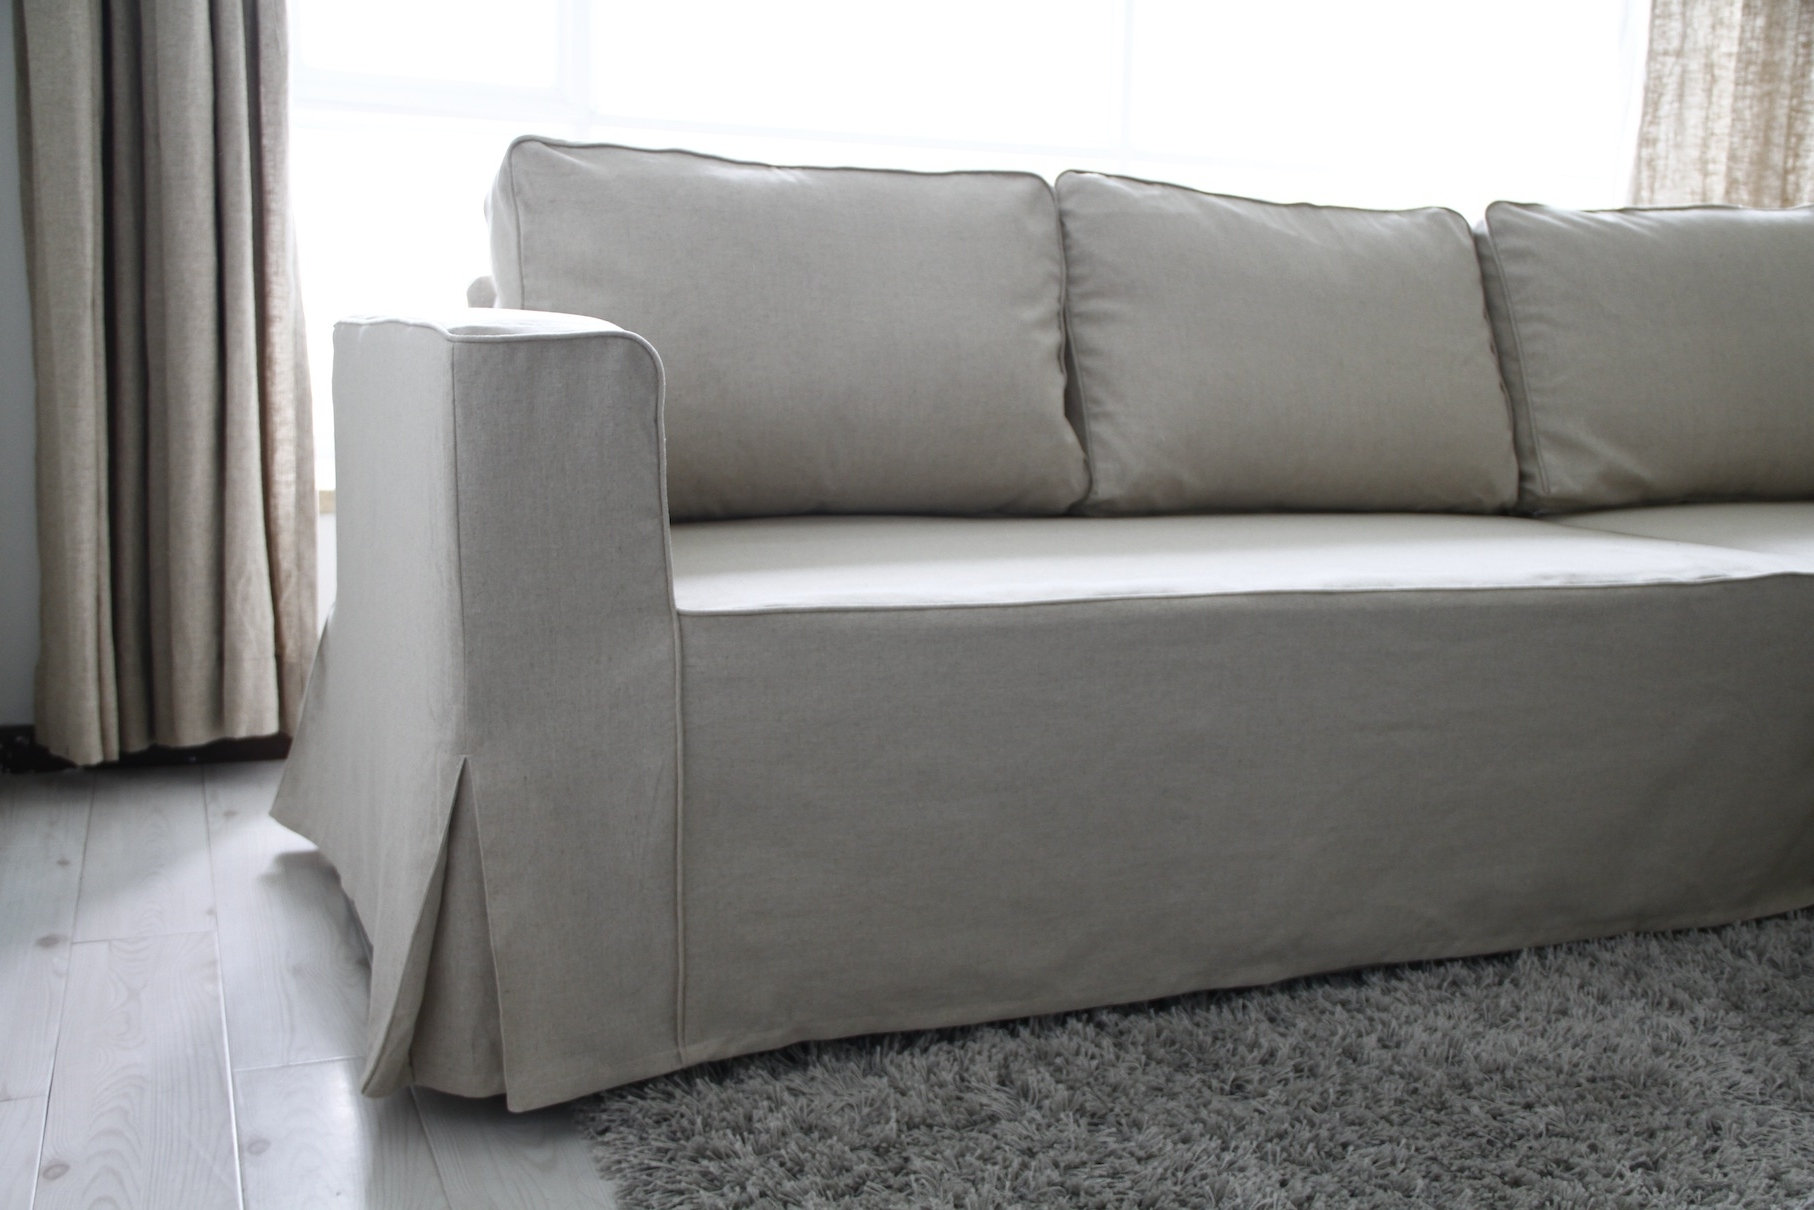 Chaise Lounge Sofa Covers With Regard To Widely Used Great Chaise Lounge Sofa Covers 57 On Modern Sofa Inspiration With (View 15 of 15)